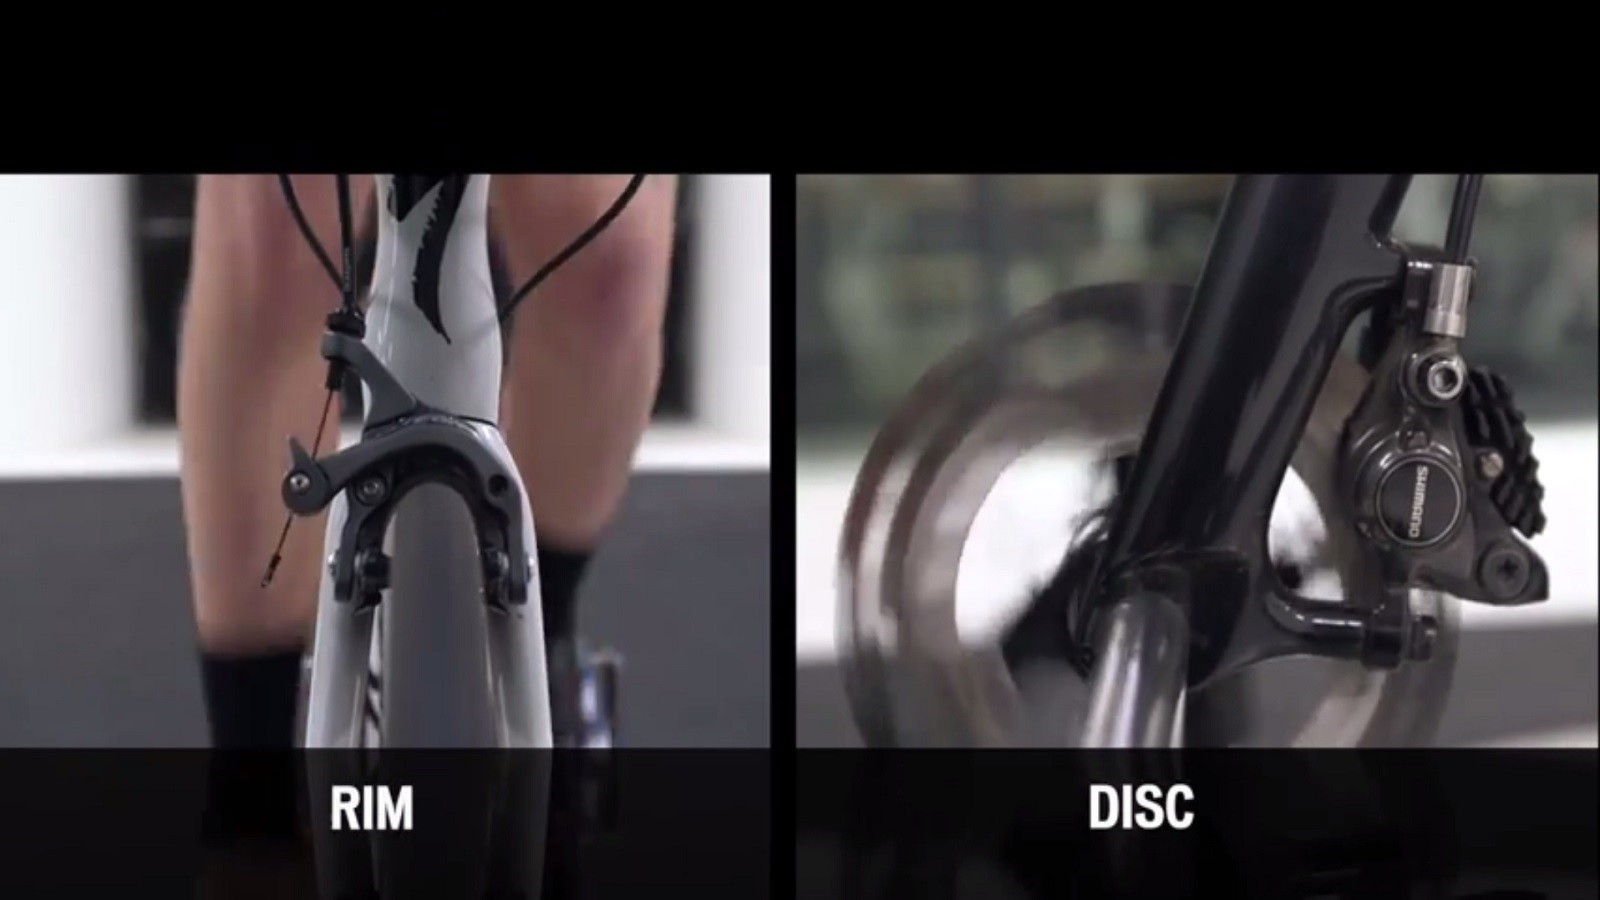 Specalized heads into their wind tunnel to test if disc or rim brakes are faster